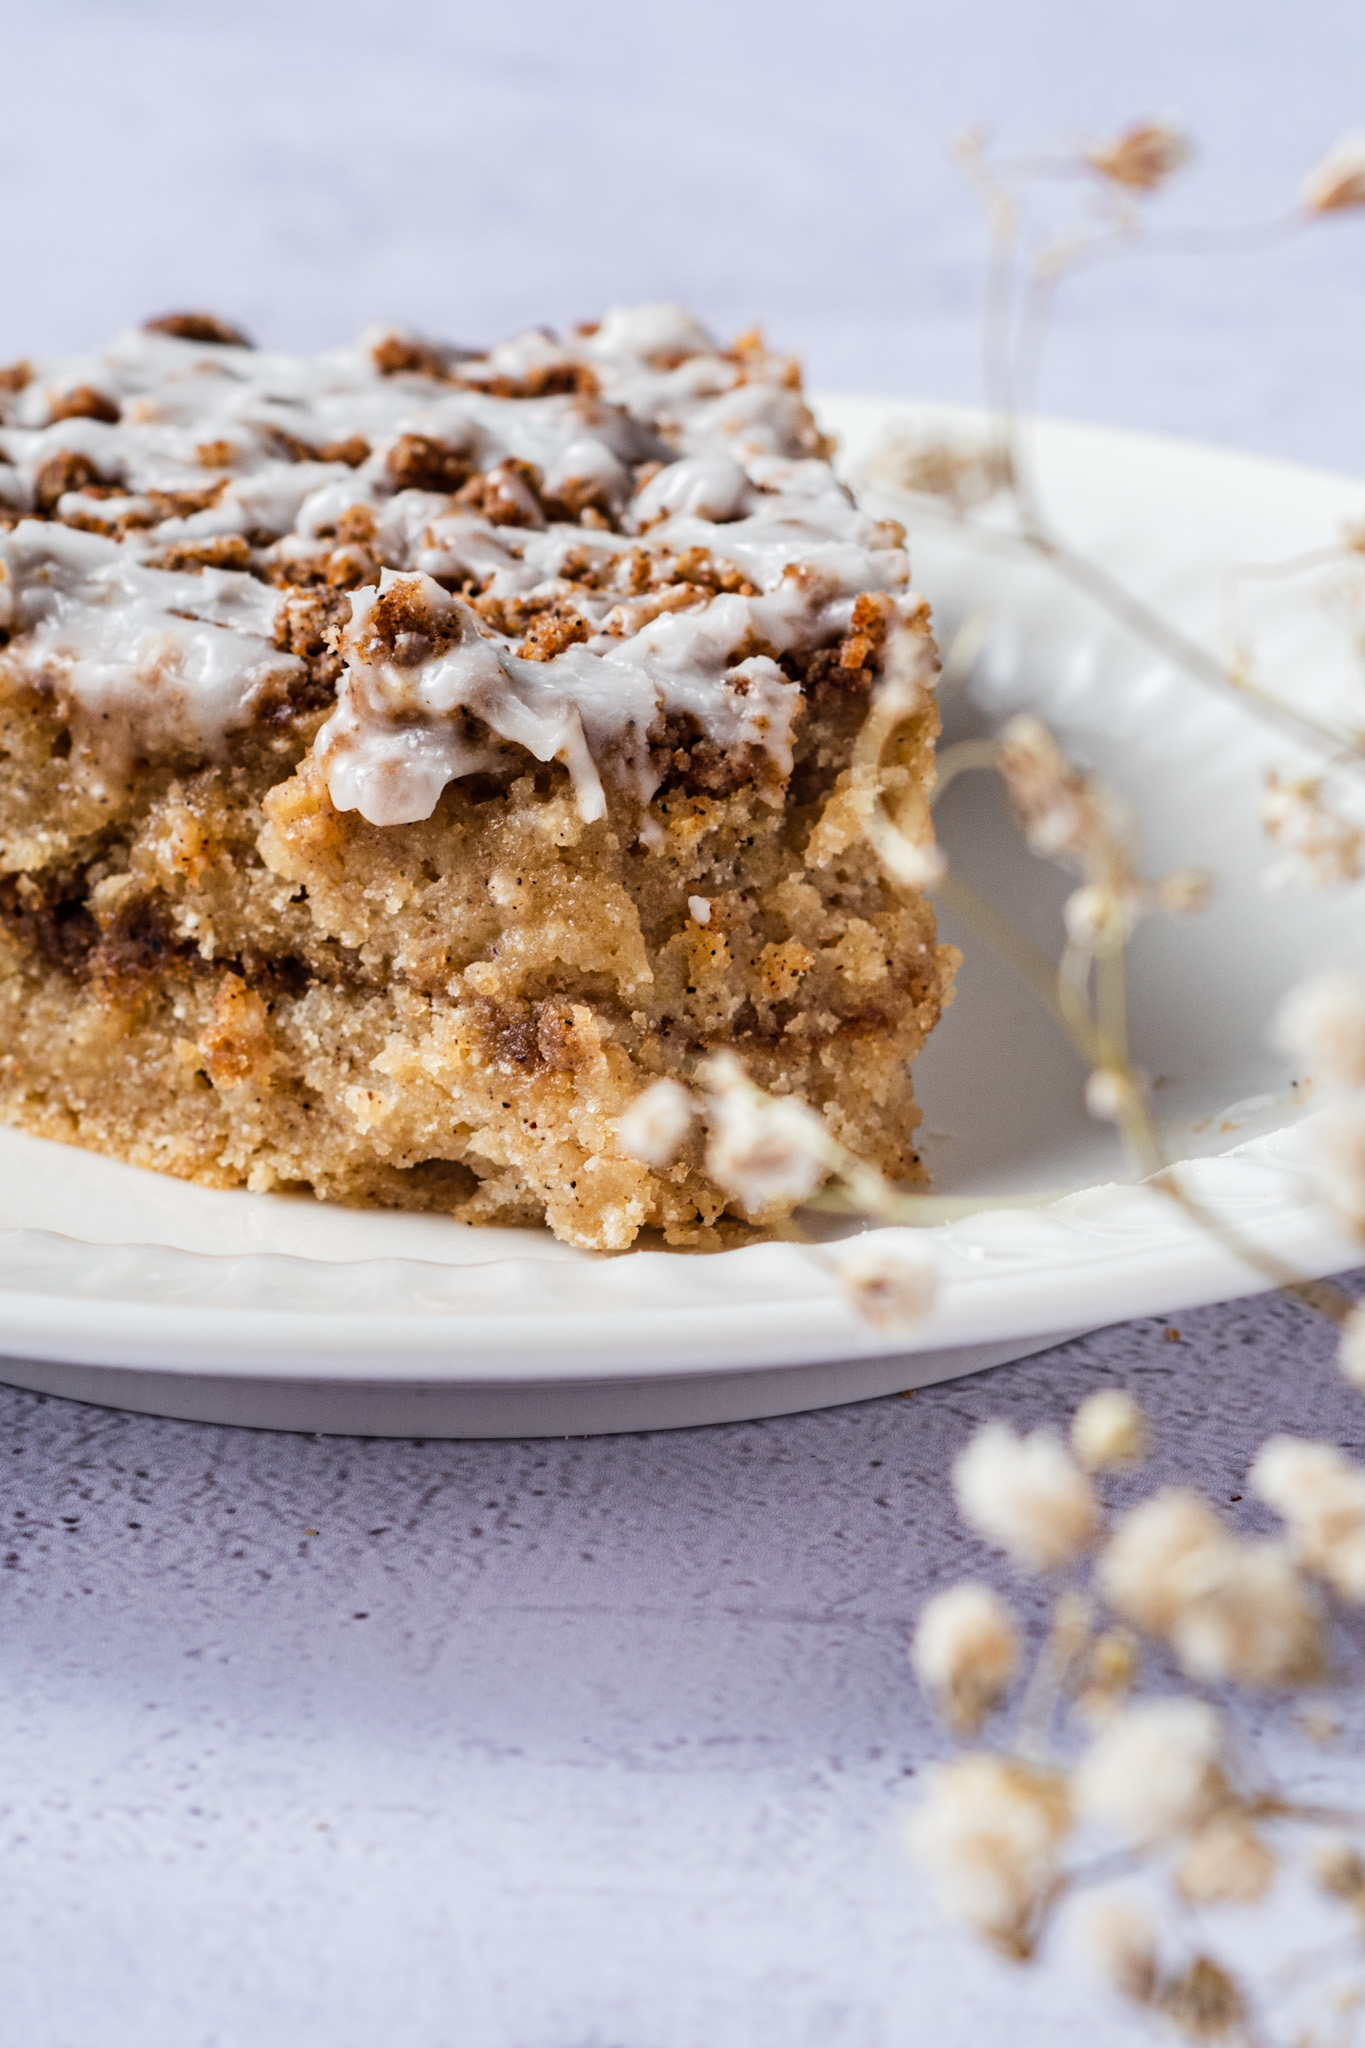 Healthy Gluten Free Banana Coffee Crumb Cake